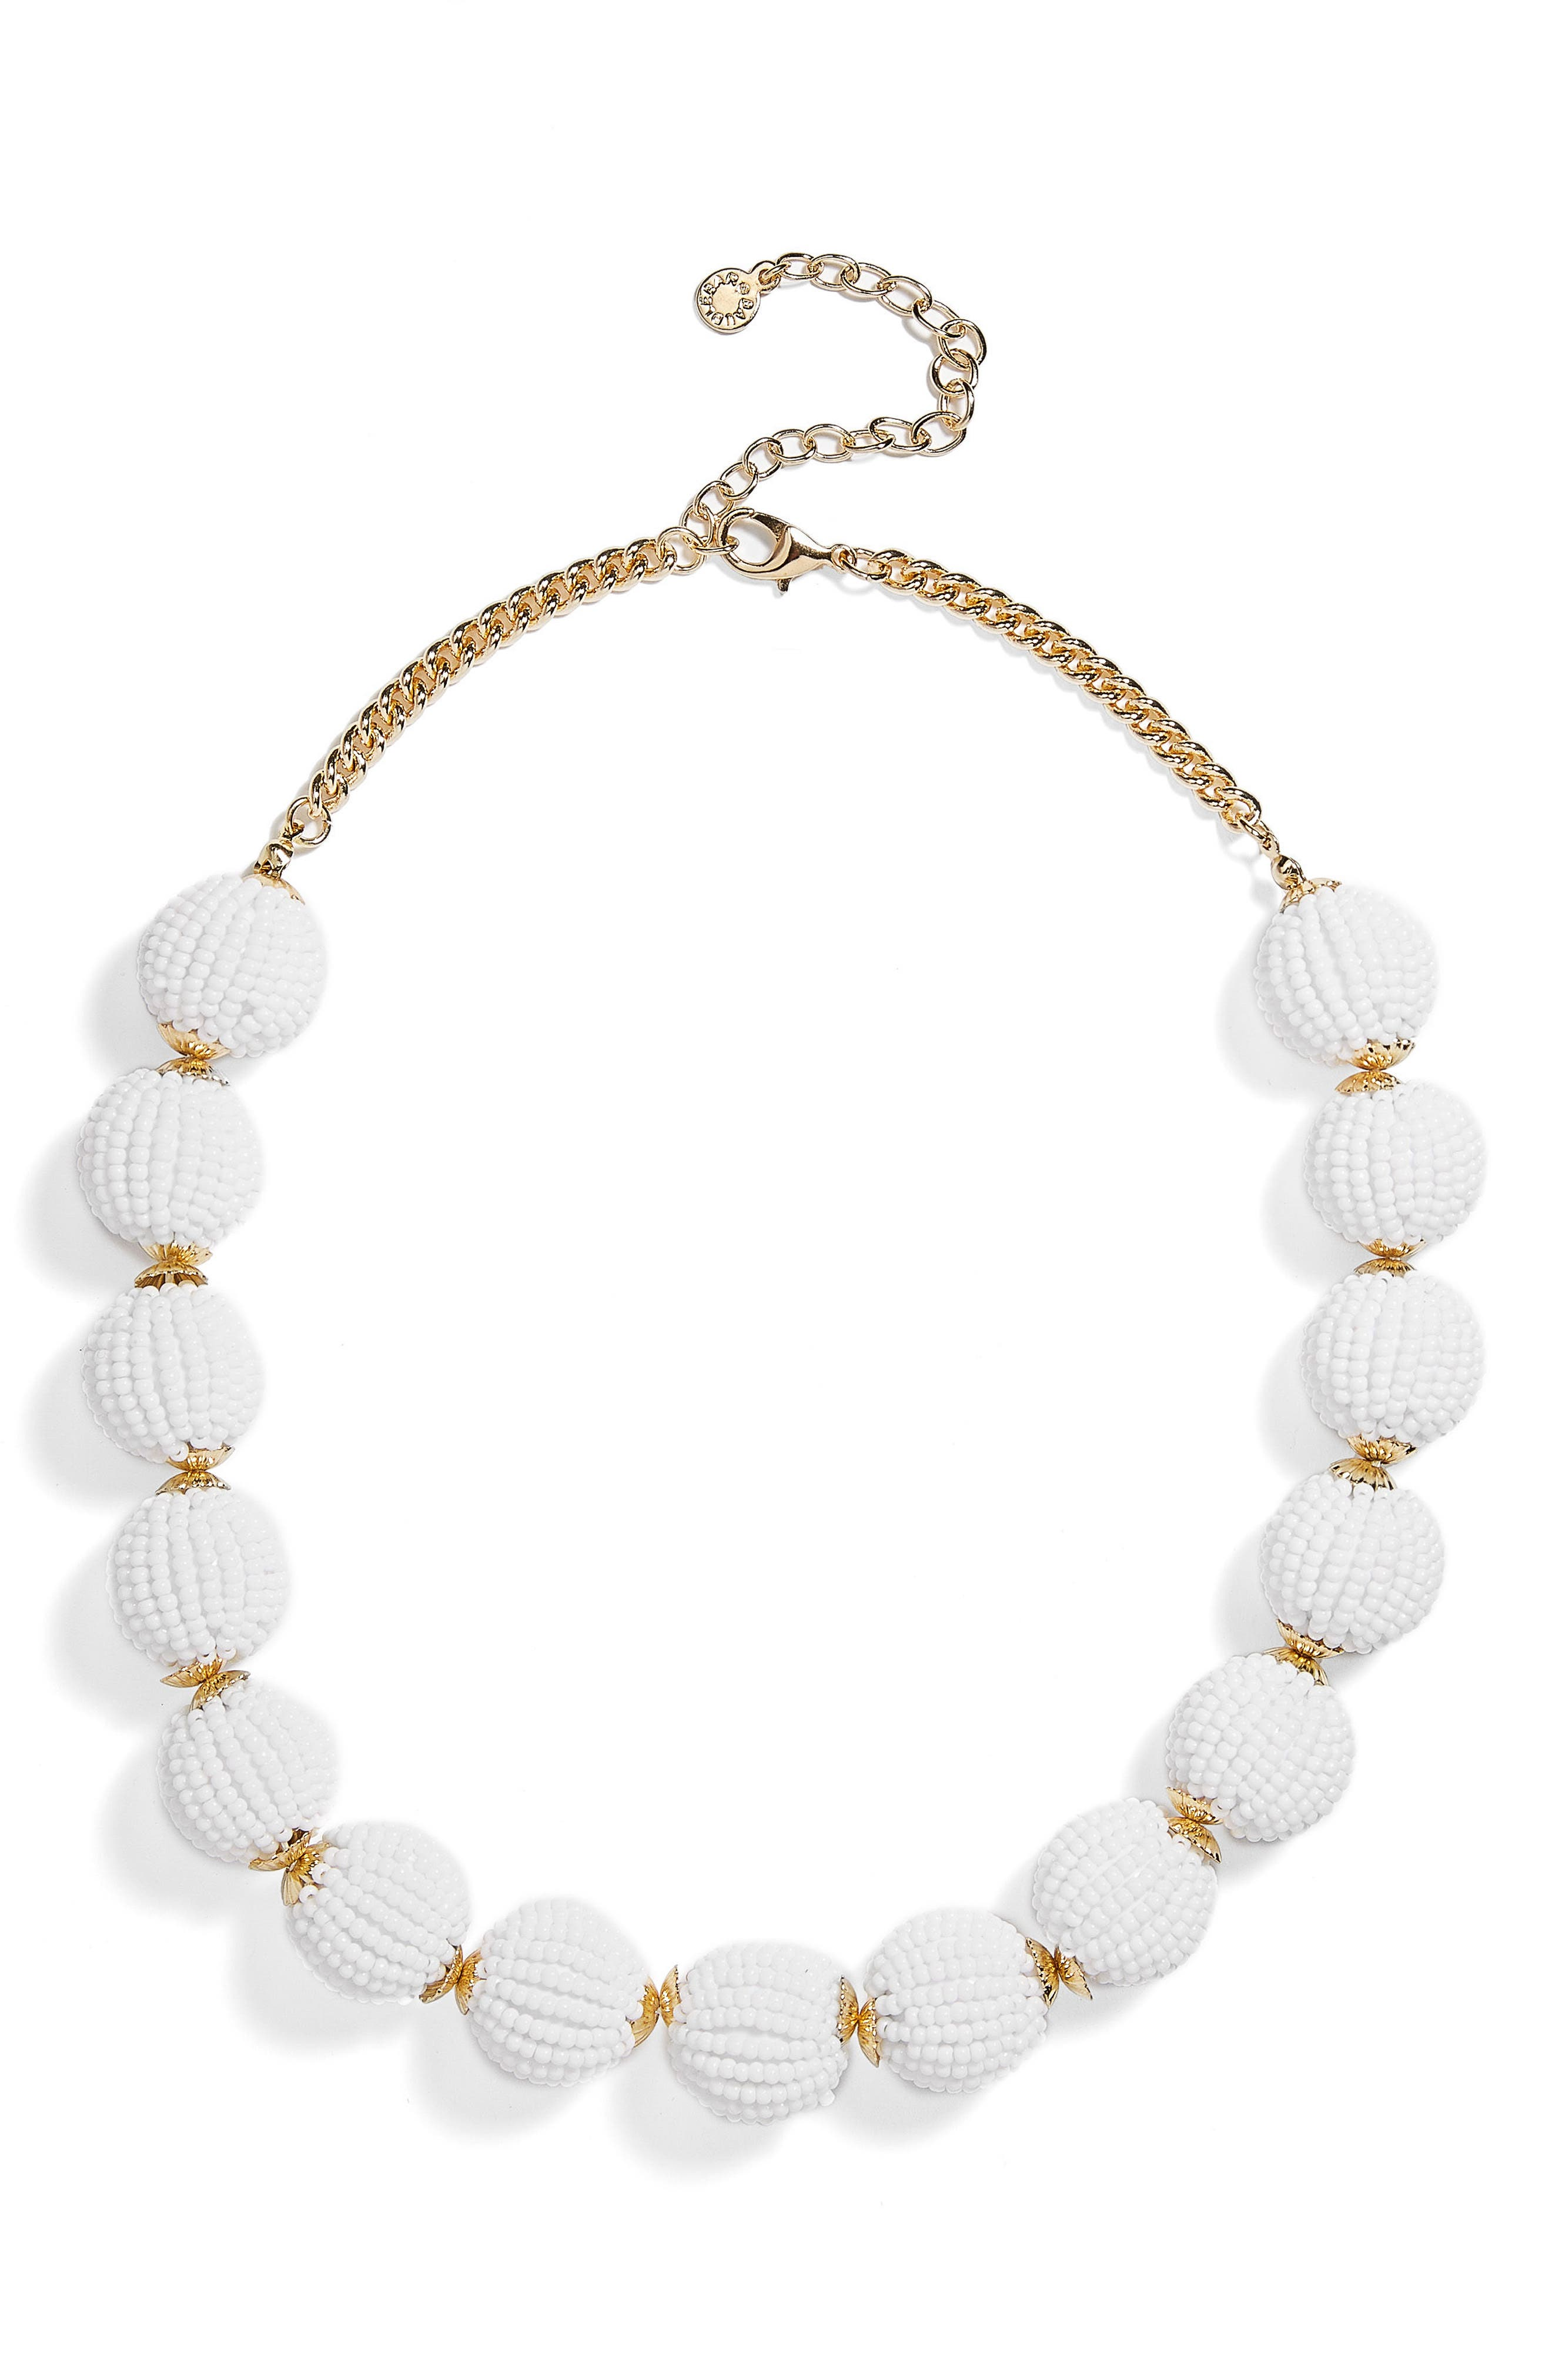 Beaded Ball Statement Necklace,                             Main thumbnail 1, color,                             100